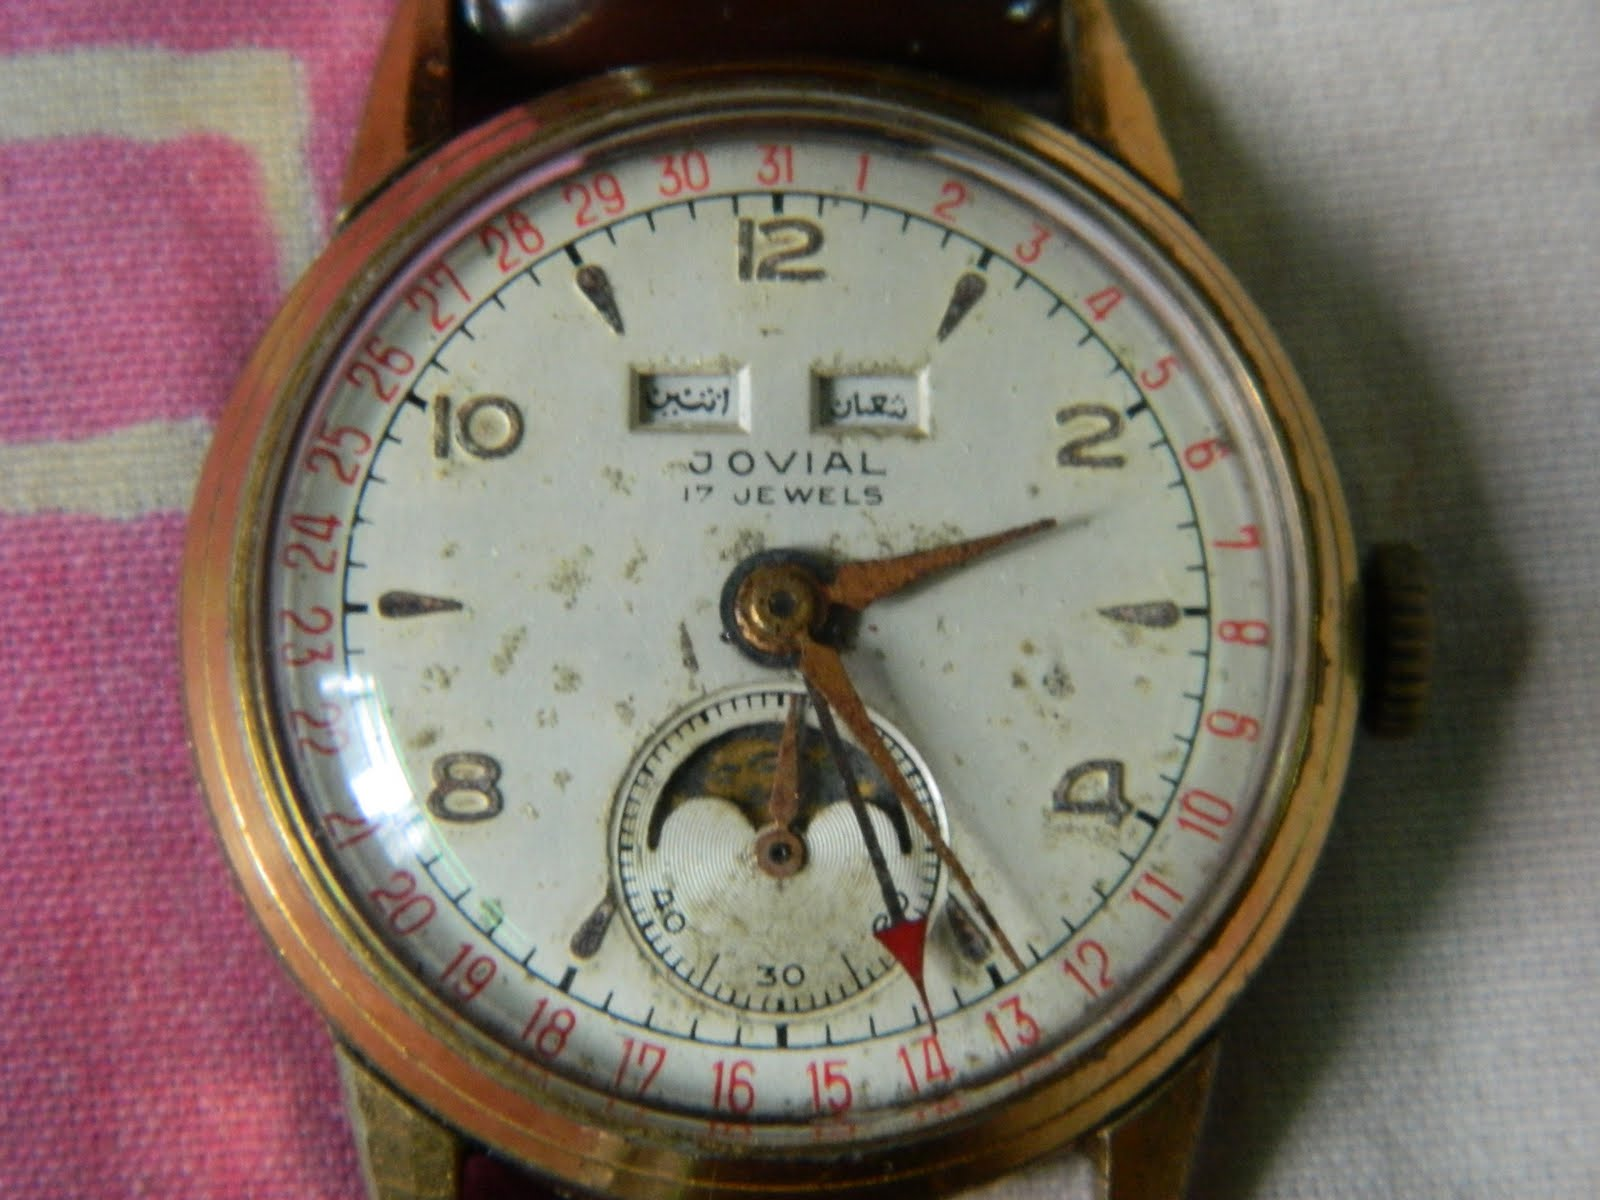 Jovial watch prices